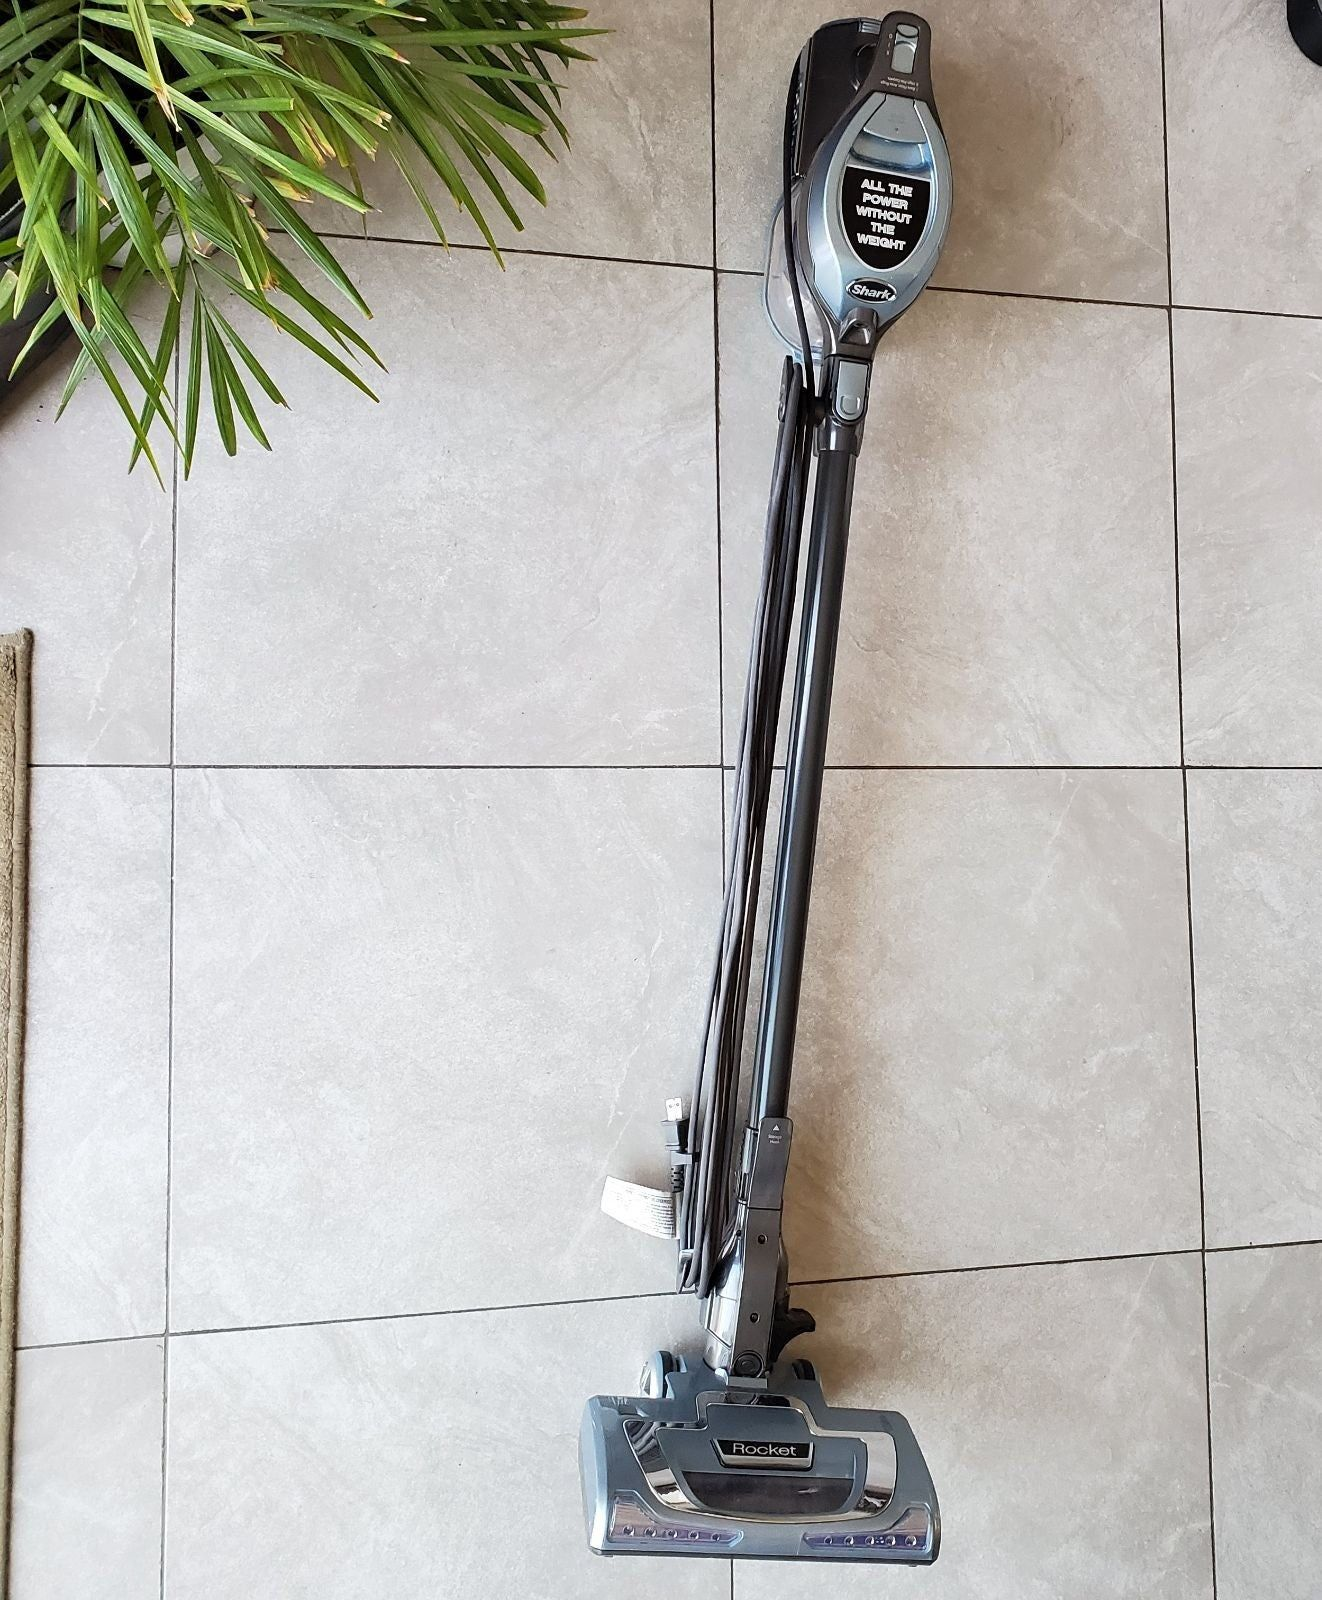 Shark rocket vacuum preowned tested please notice some